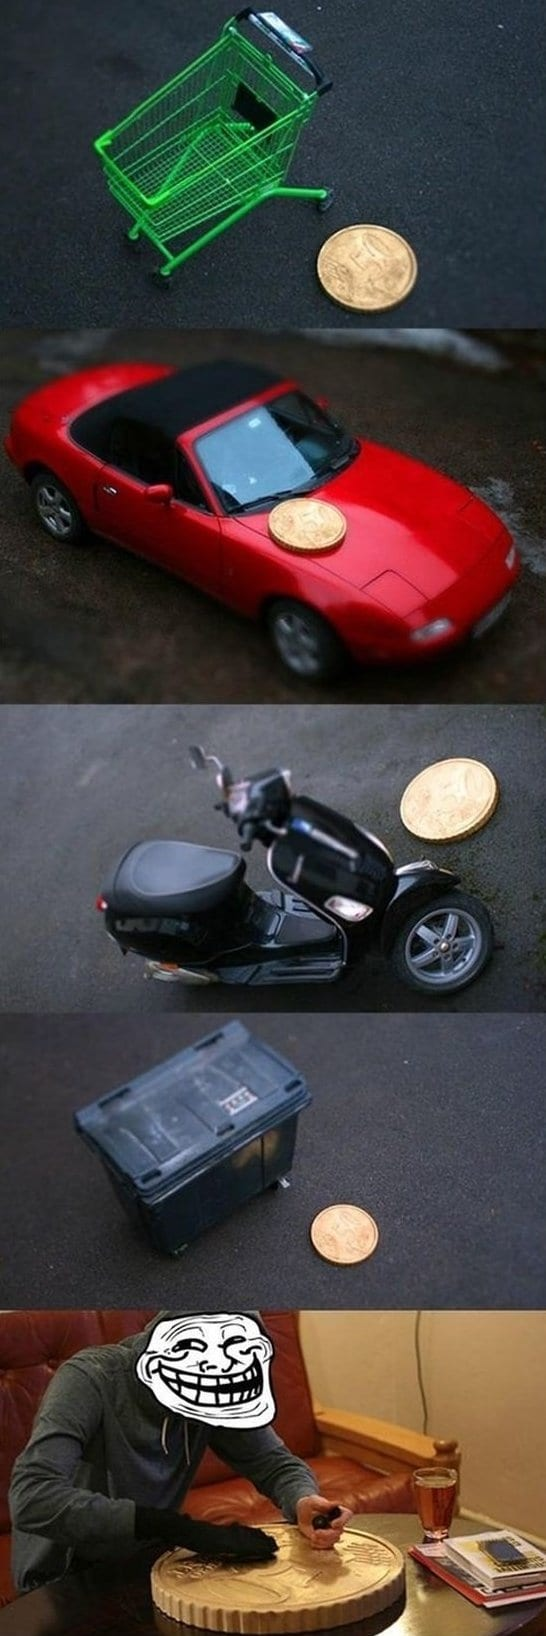 funny-pictures-meme-this-guy-is-a-real-pro-at-making-miniatures